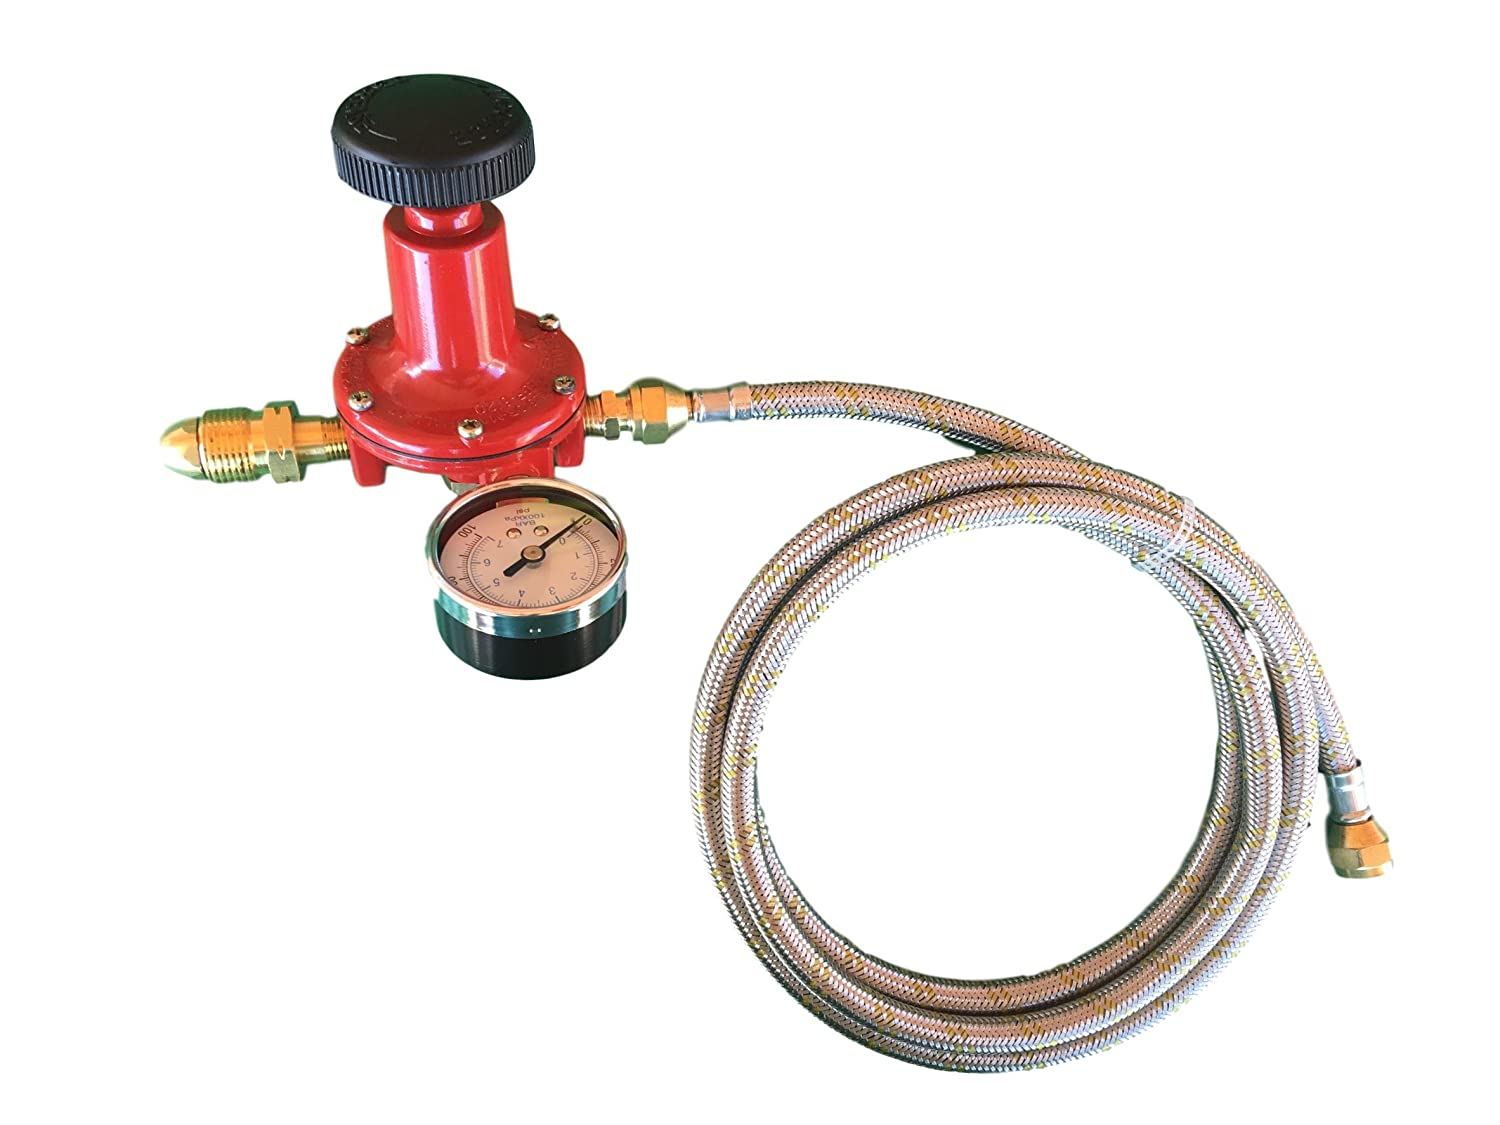 Propane LP Gas Adjustable 0-100psi High Pressure Regulator POL Connector, Gauge and 12ft Stainless Steel Braided Hose